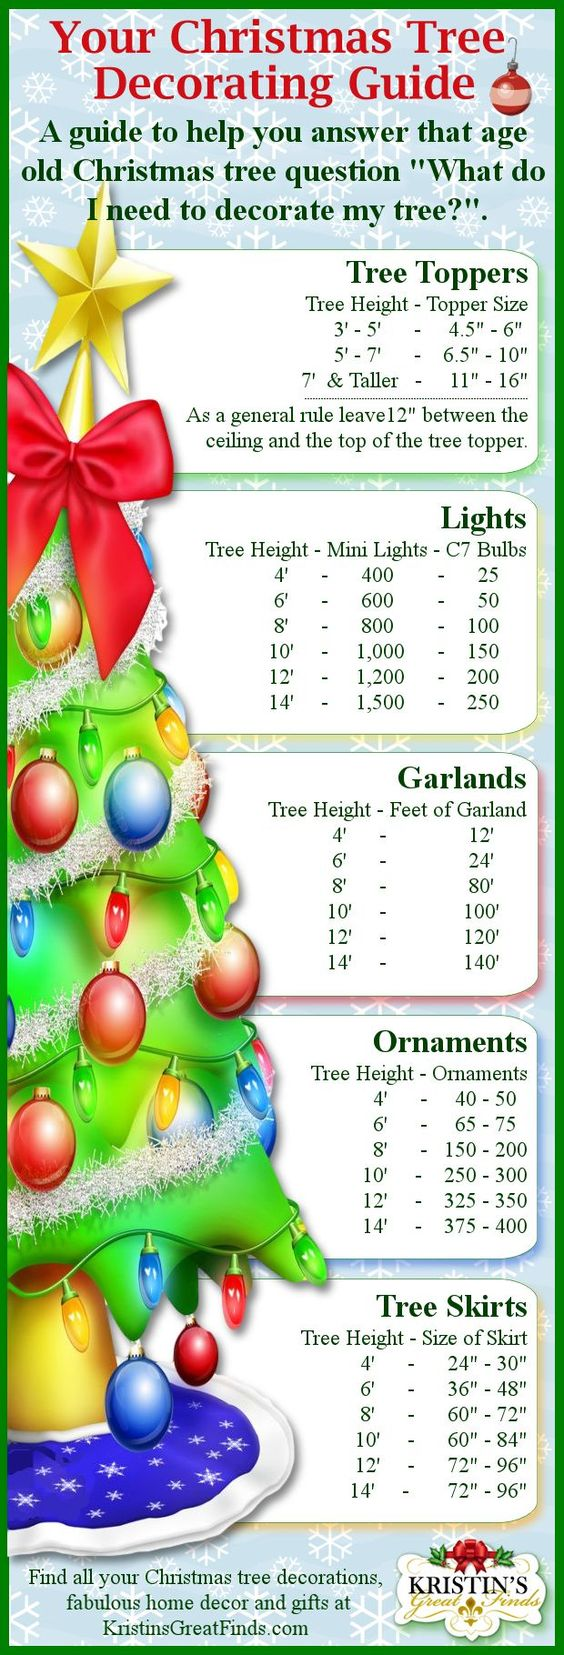 Now I won't have to guess how many ornaments, lights, garlands ...